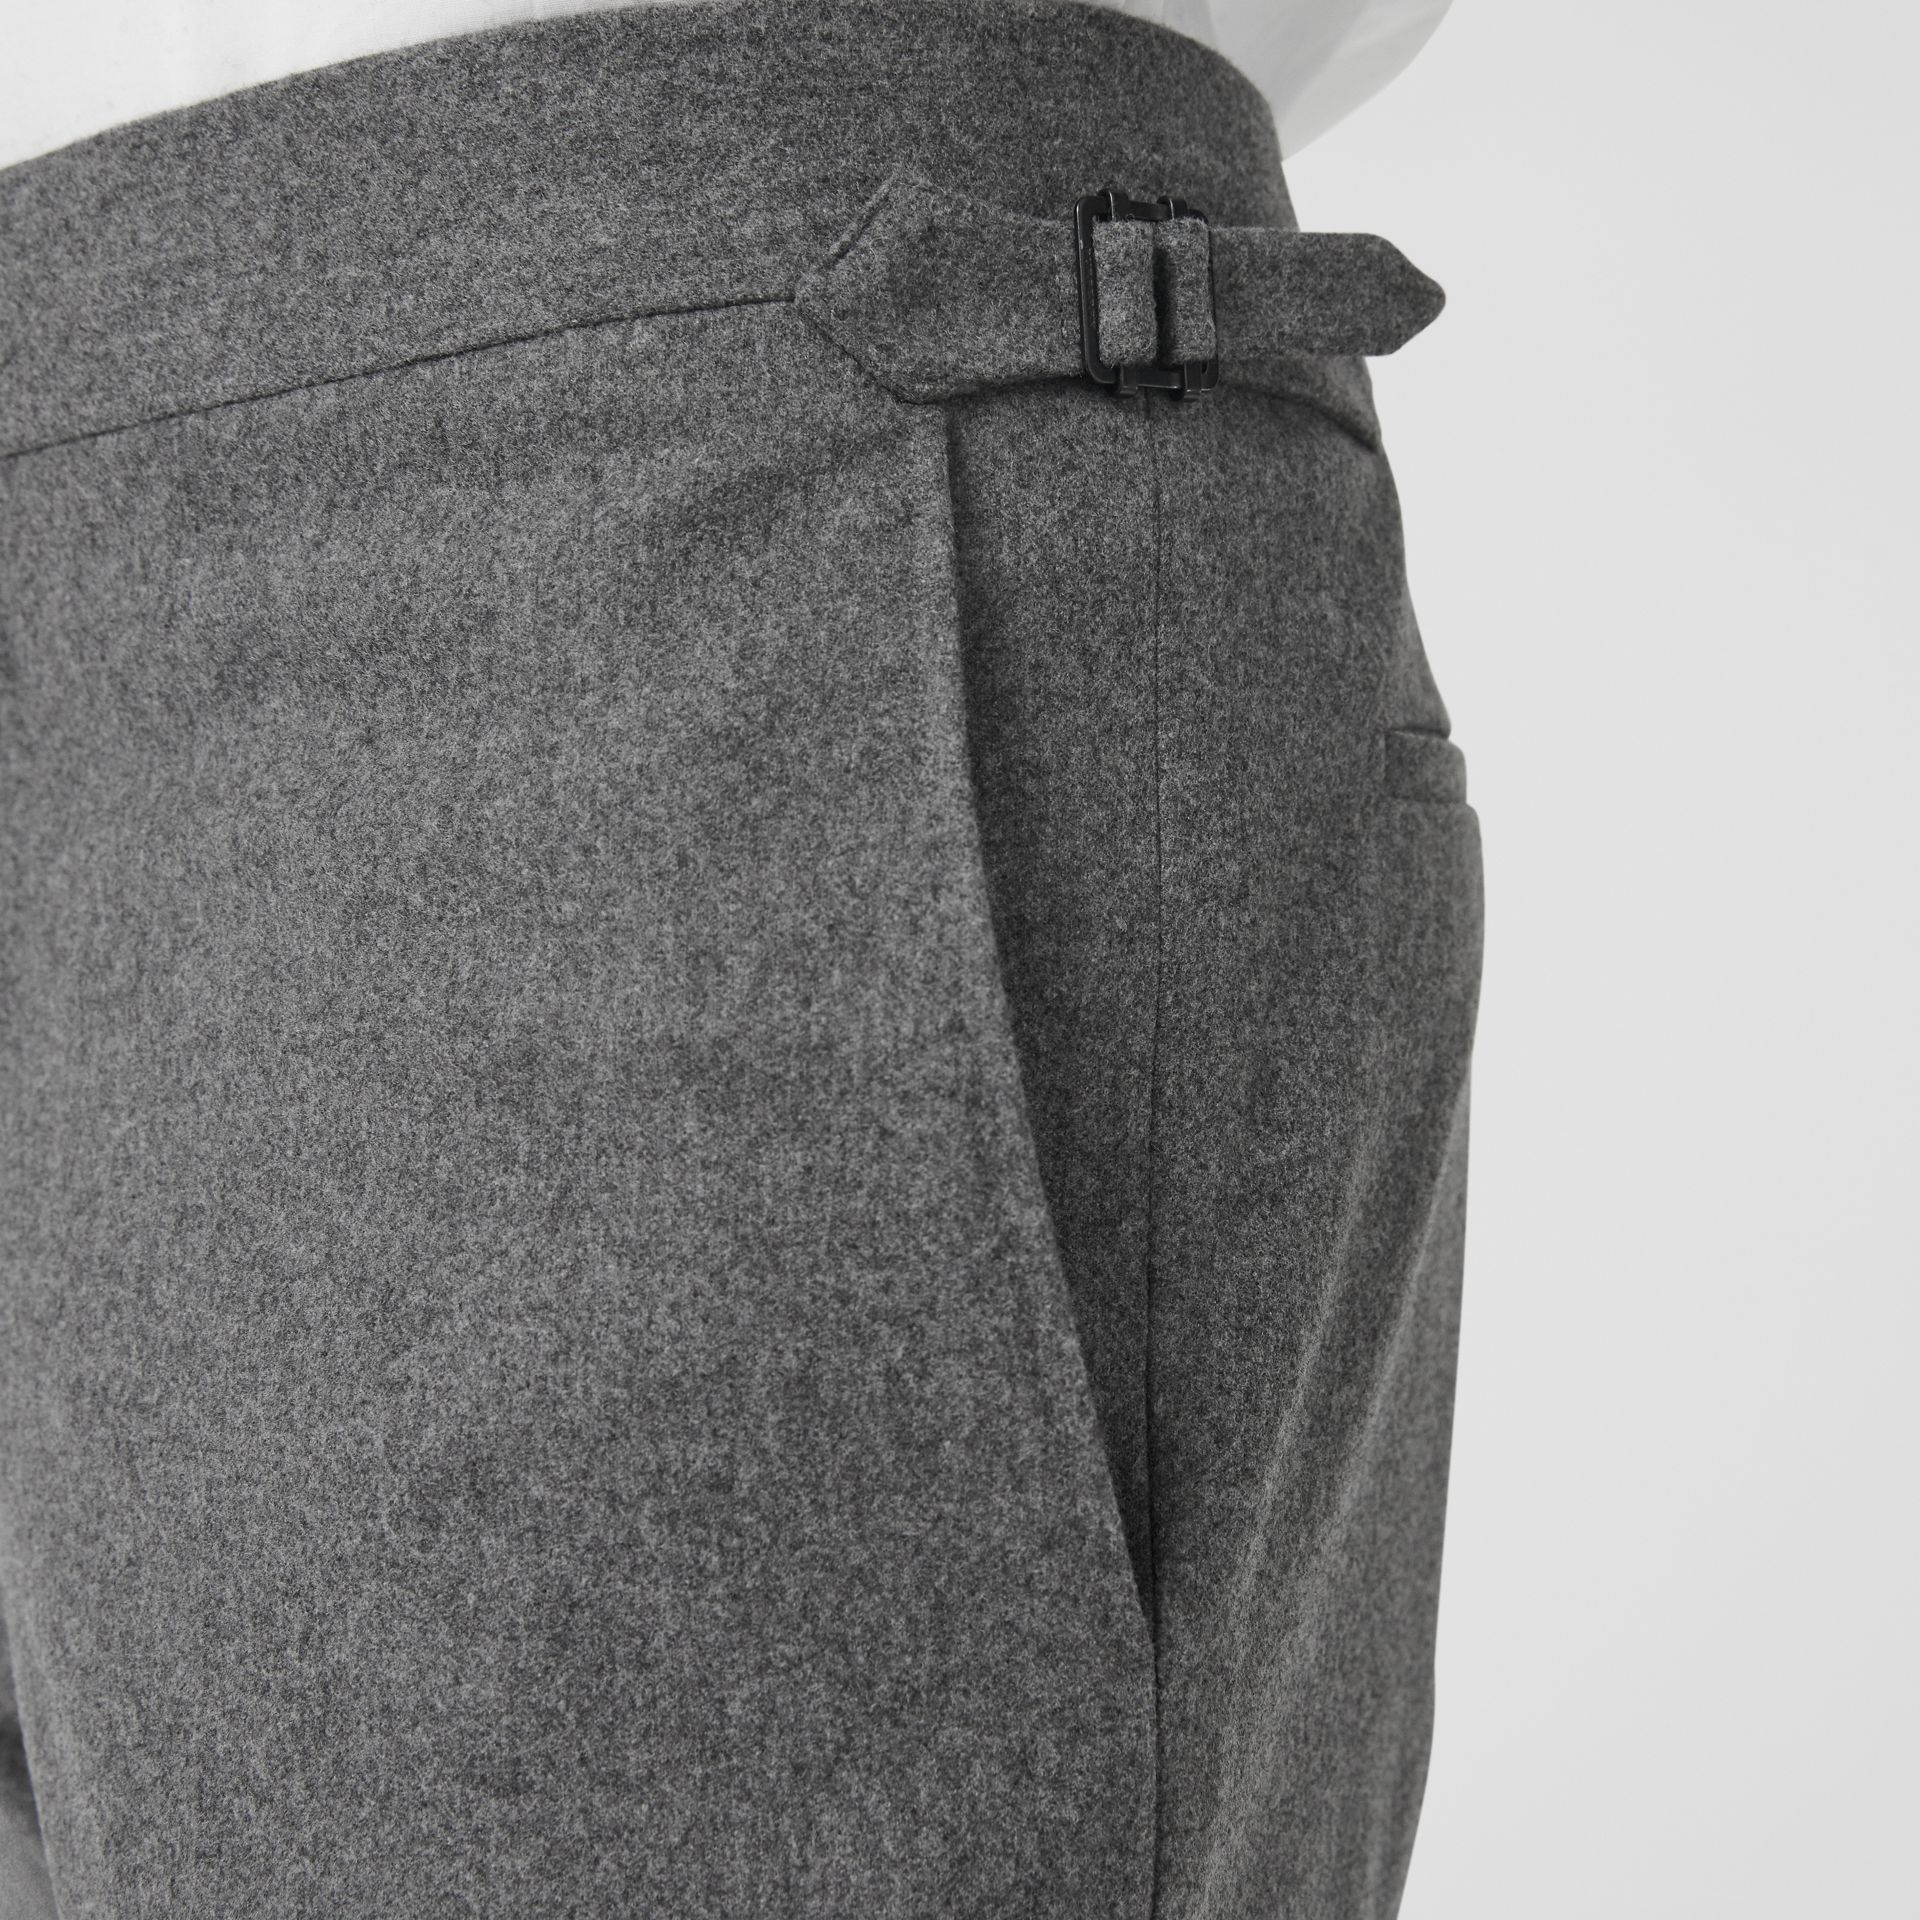 Classic Fit Wool Cashmere Tailored Trousers in Grey - Men | Burberry United Kingdom - gallery image 1